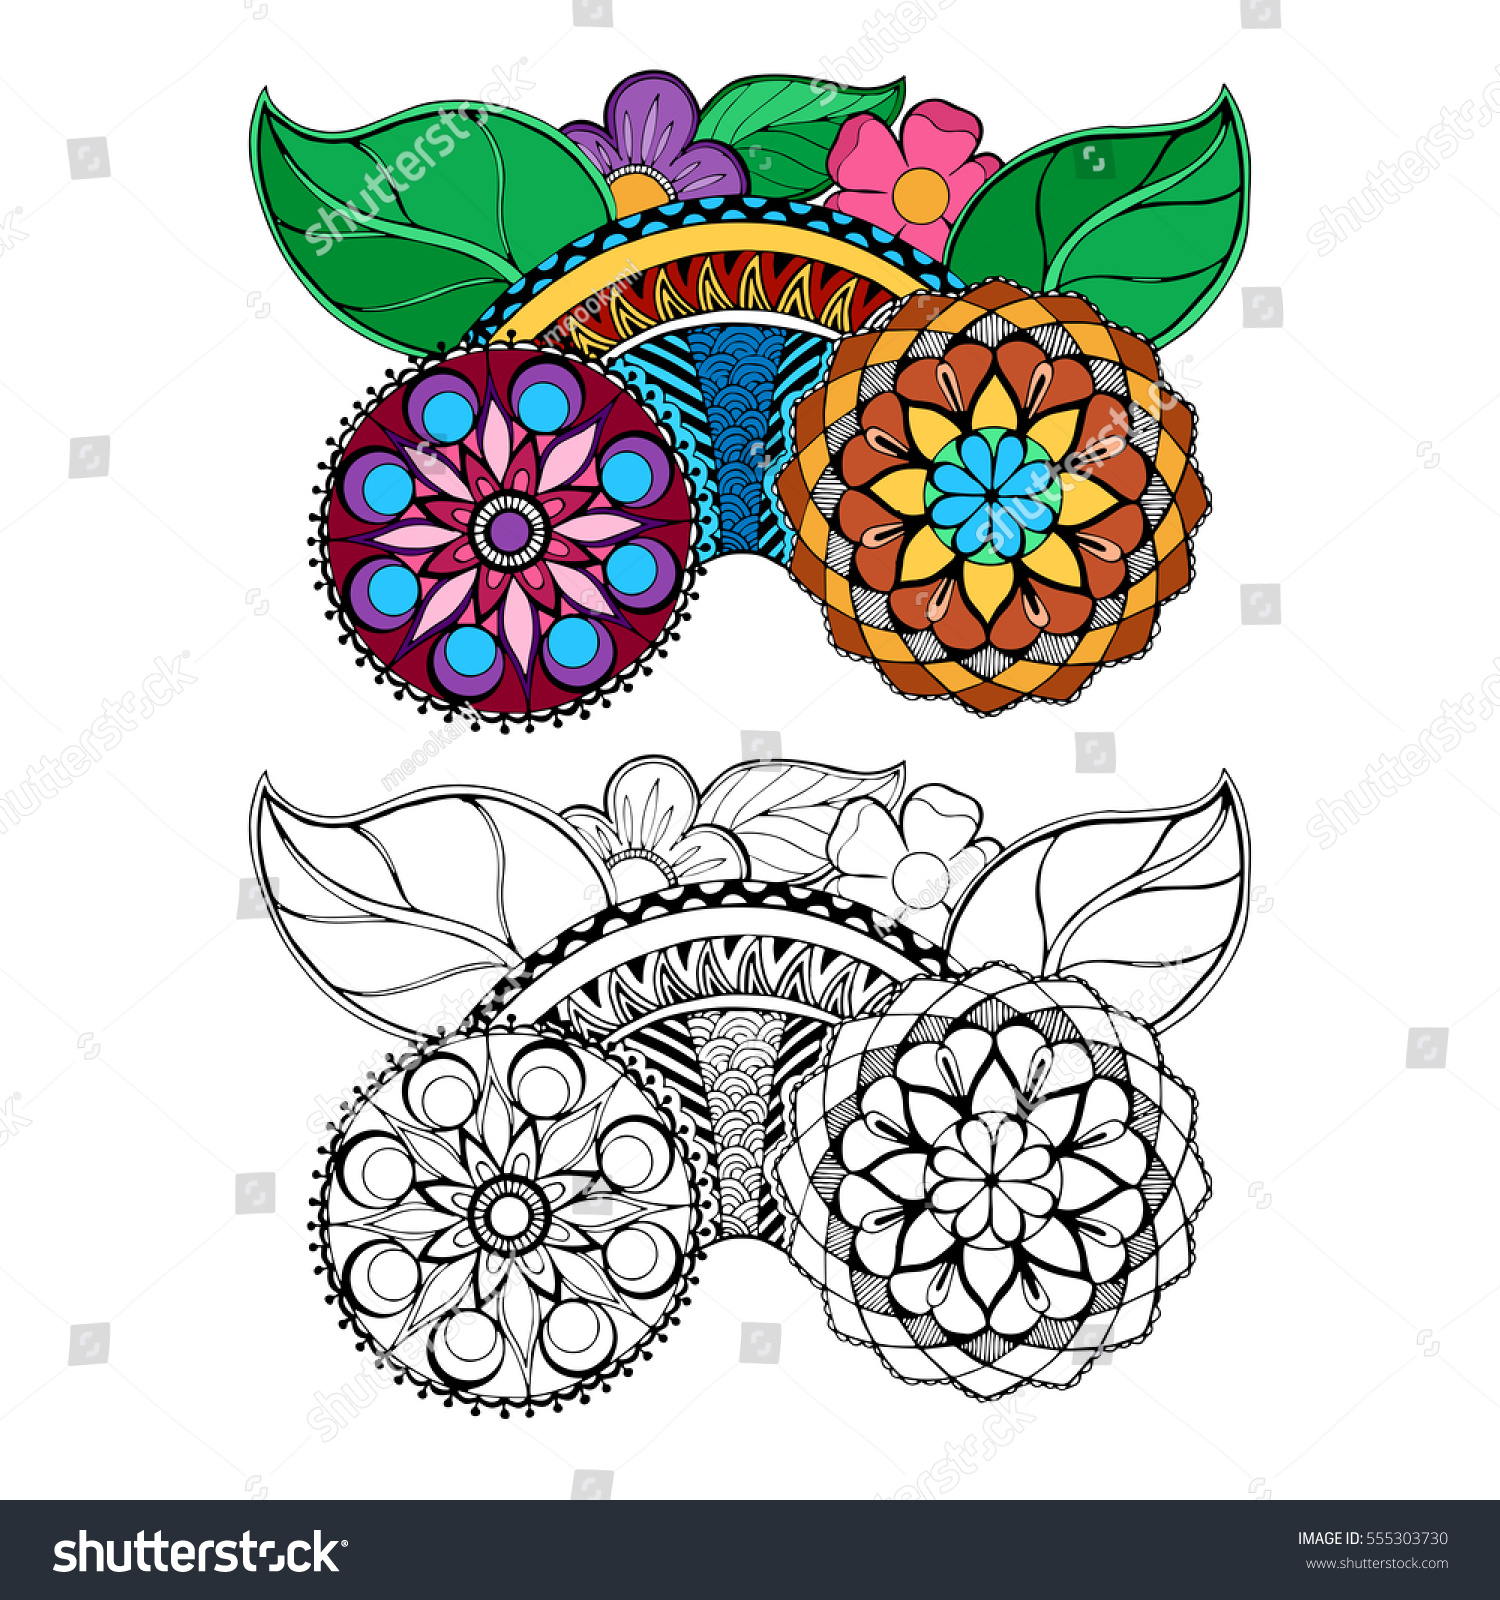 Page Coloring Book Very Interesting Relaxing Stock Vector 555303730